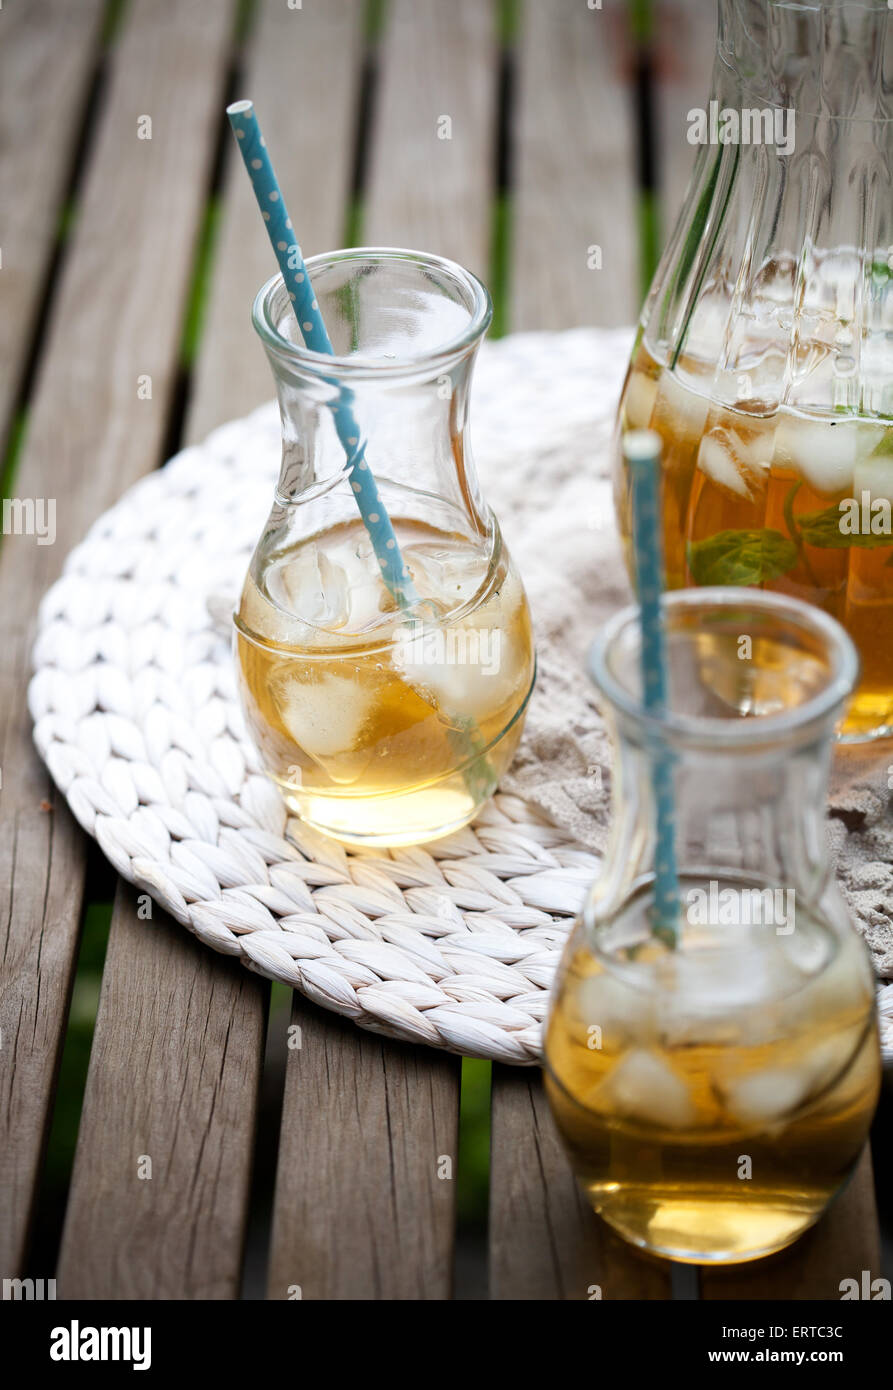 Ice tea with mint leaves - Stock Image